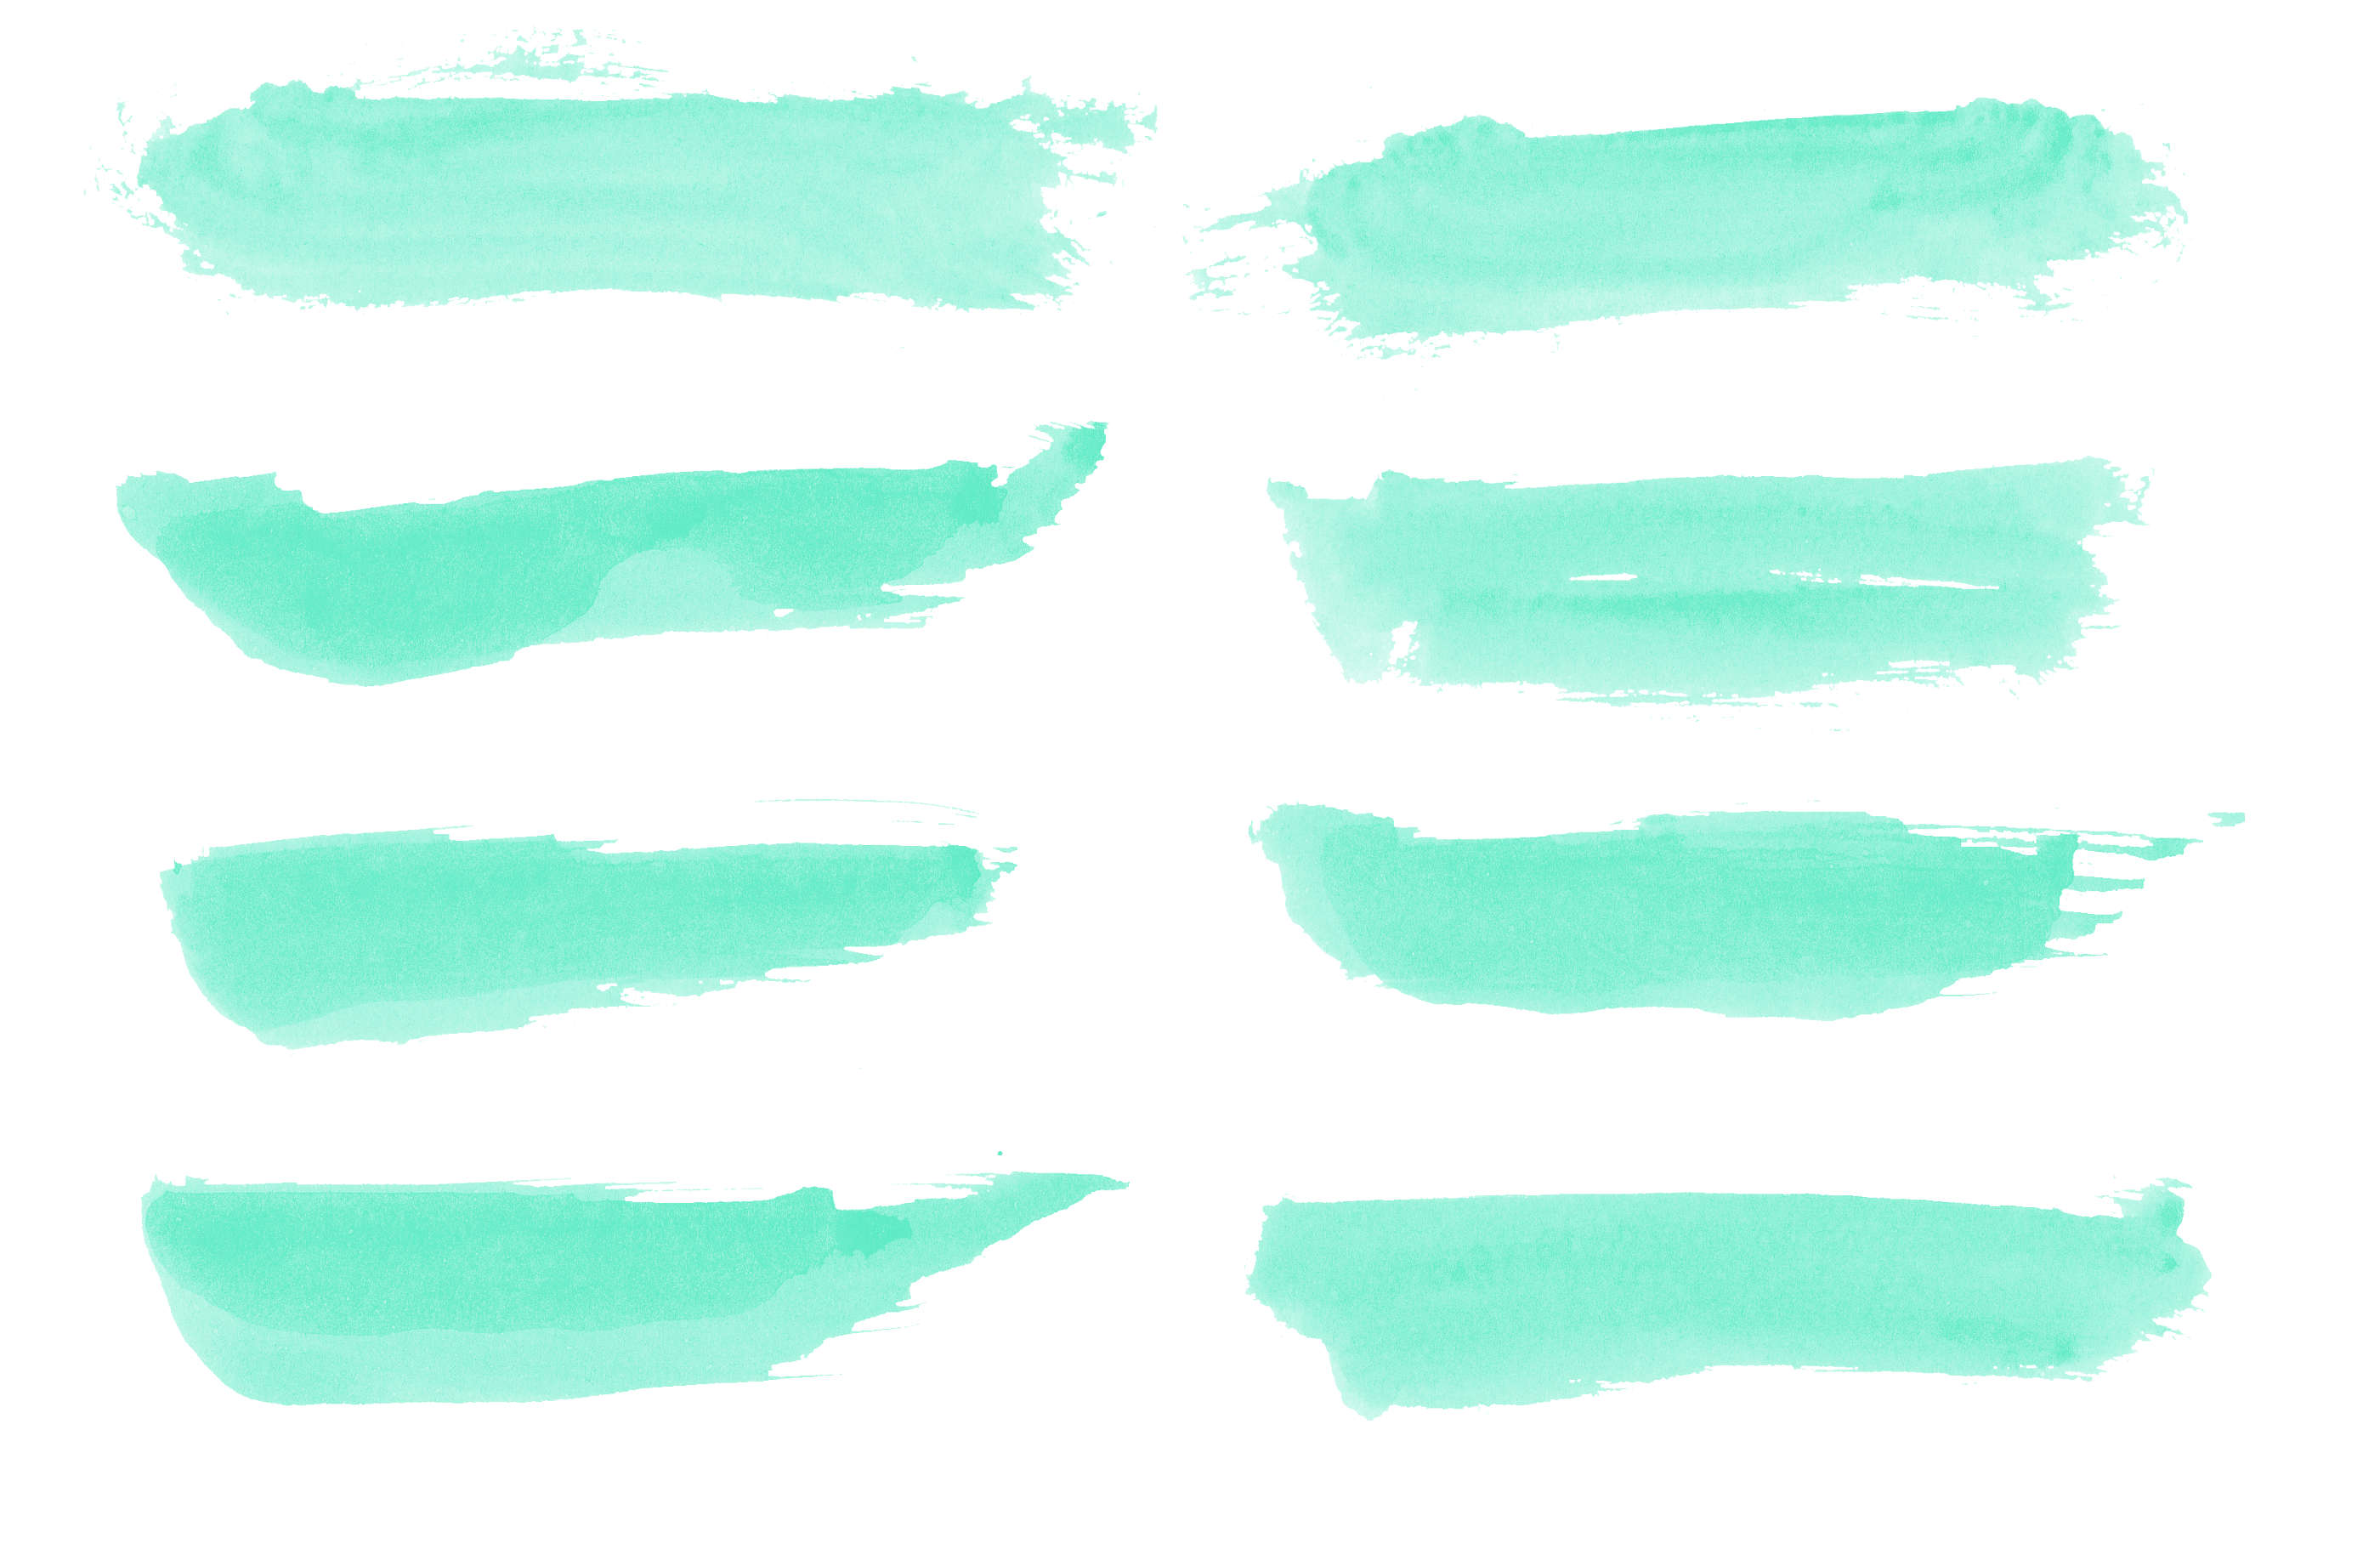 8-light-turquoise-watercolor-brush-stroke-cover.jpg